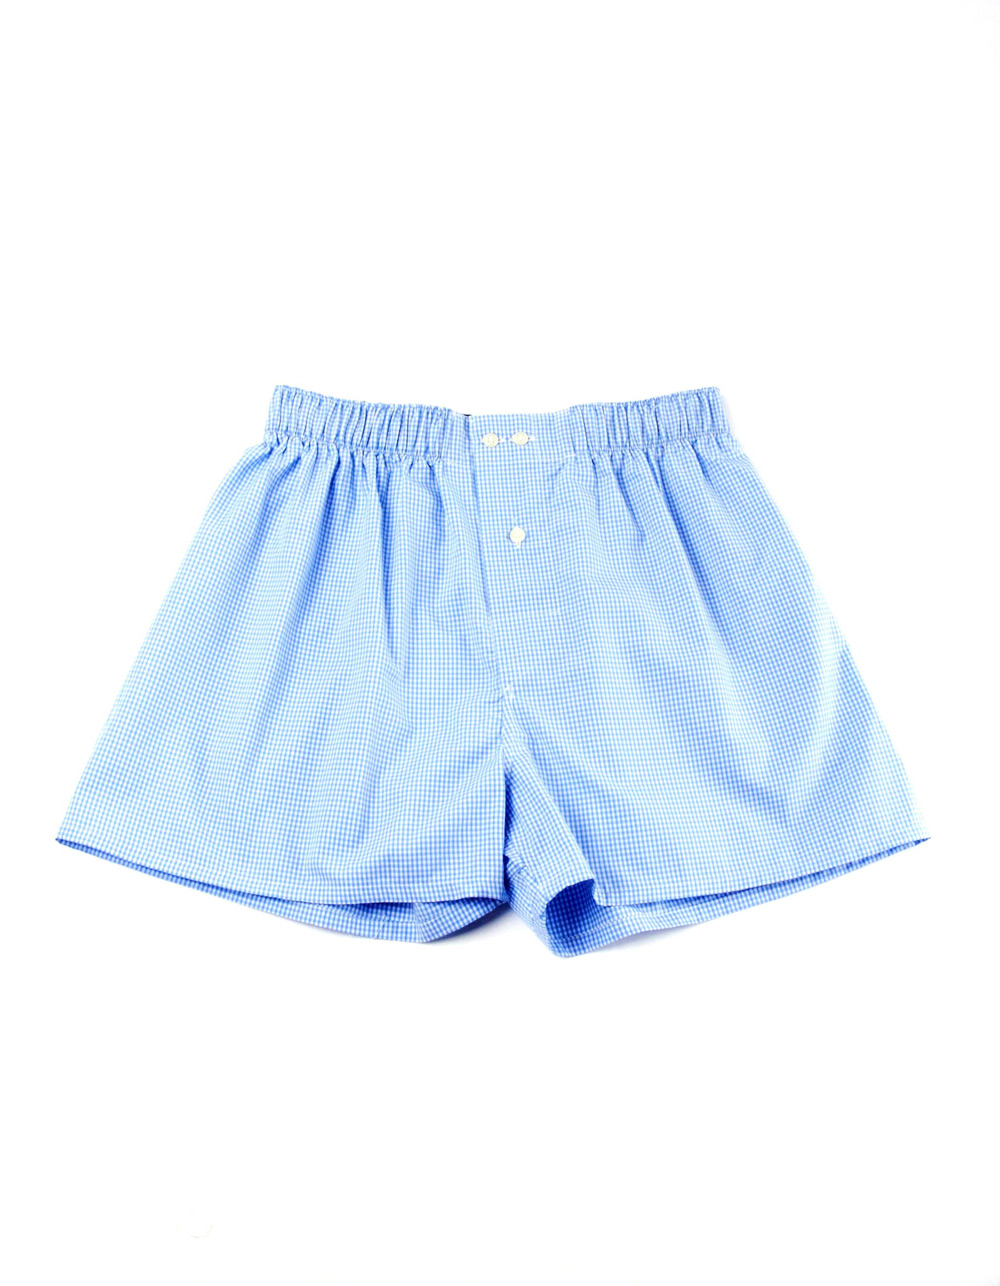 Light blue boxer shorts